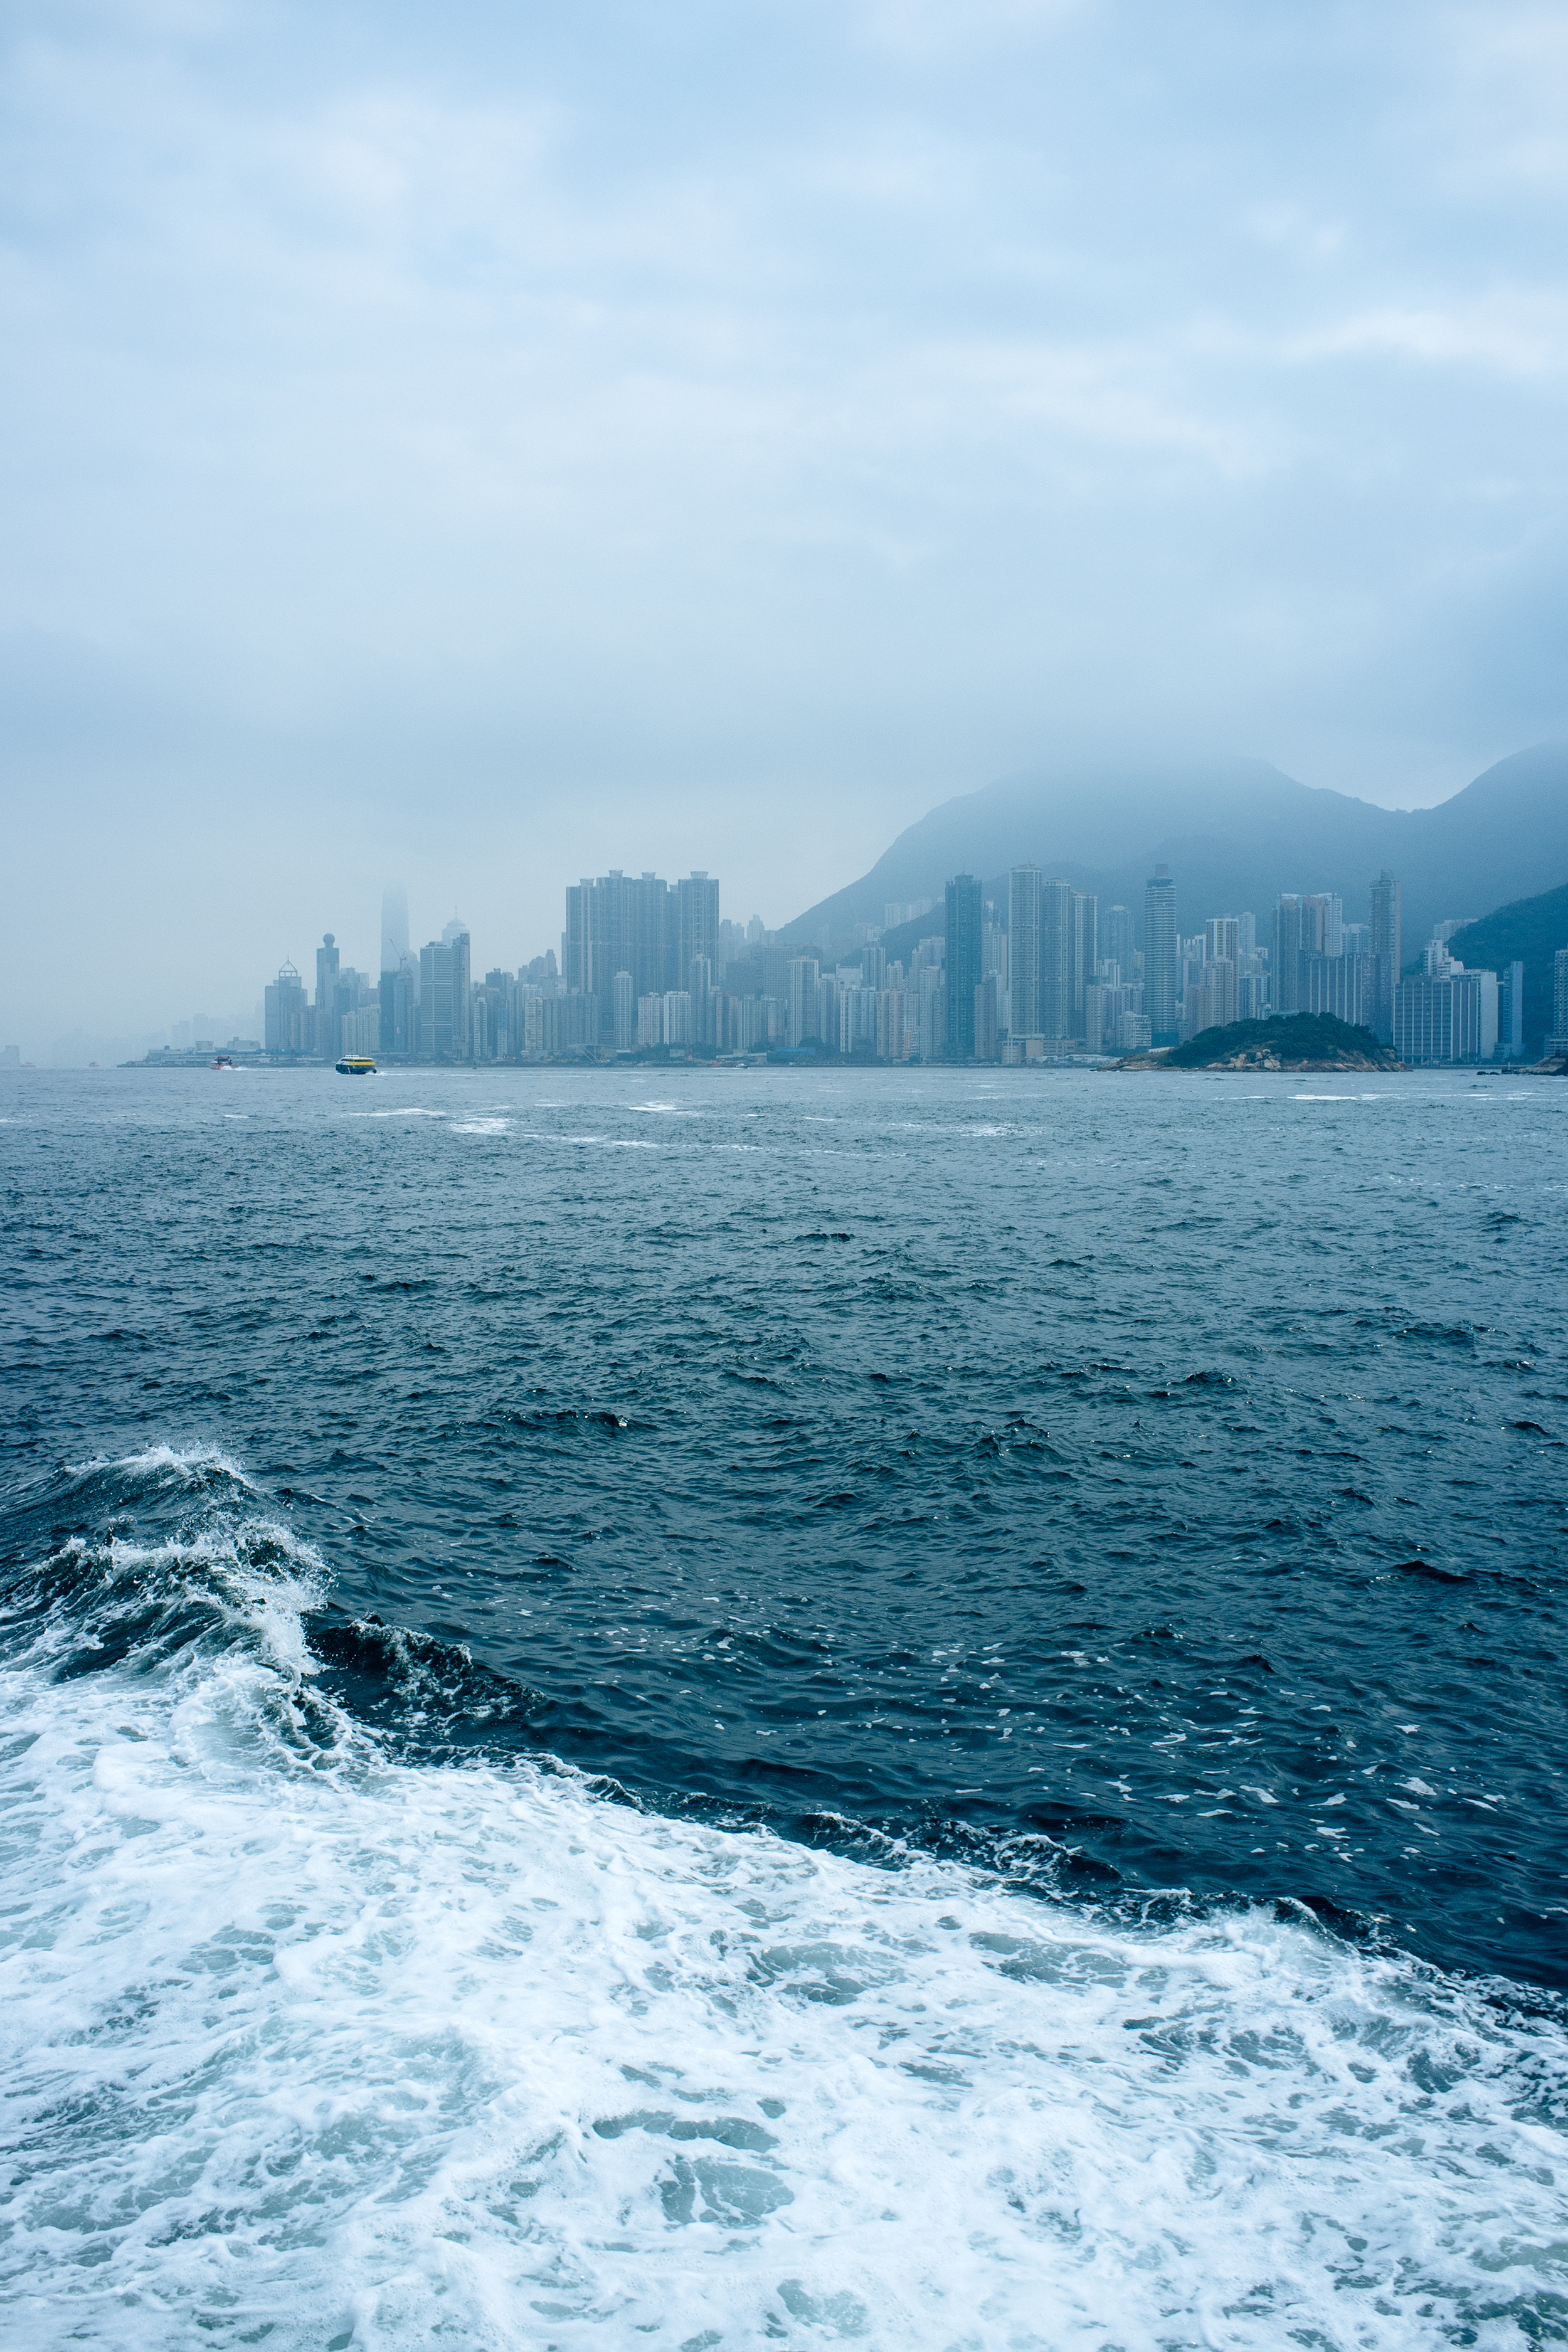 Central HK, seen from the Peng Chau ferry.